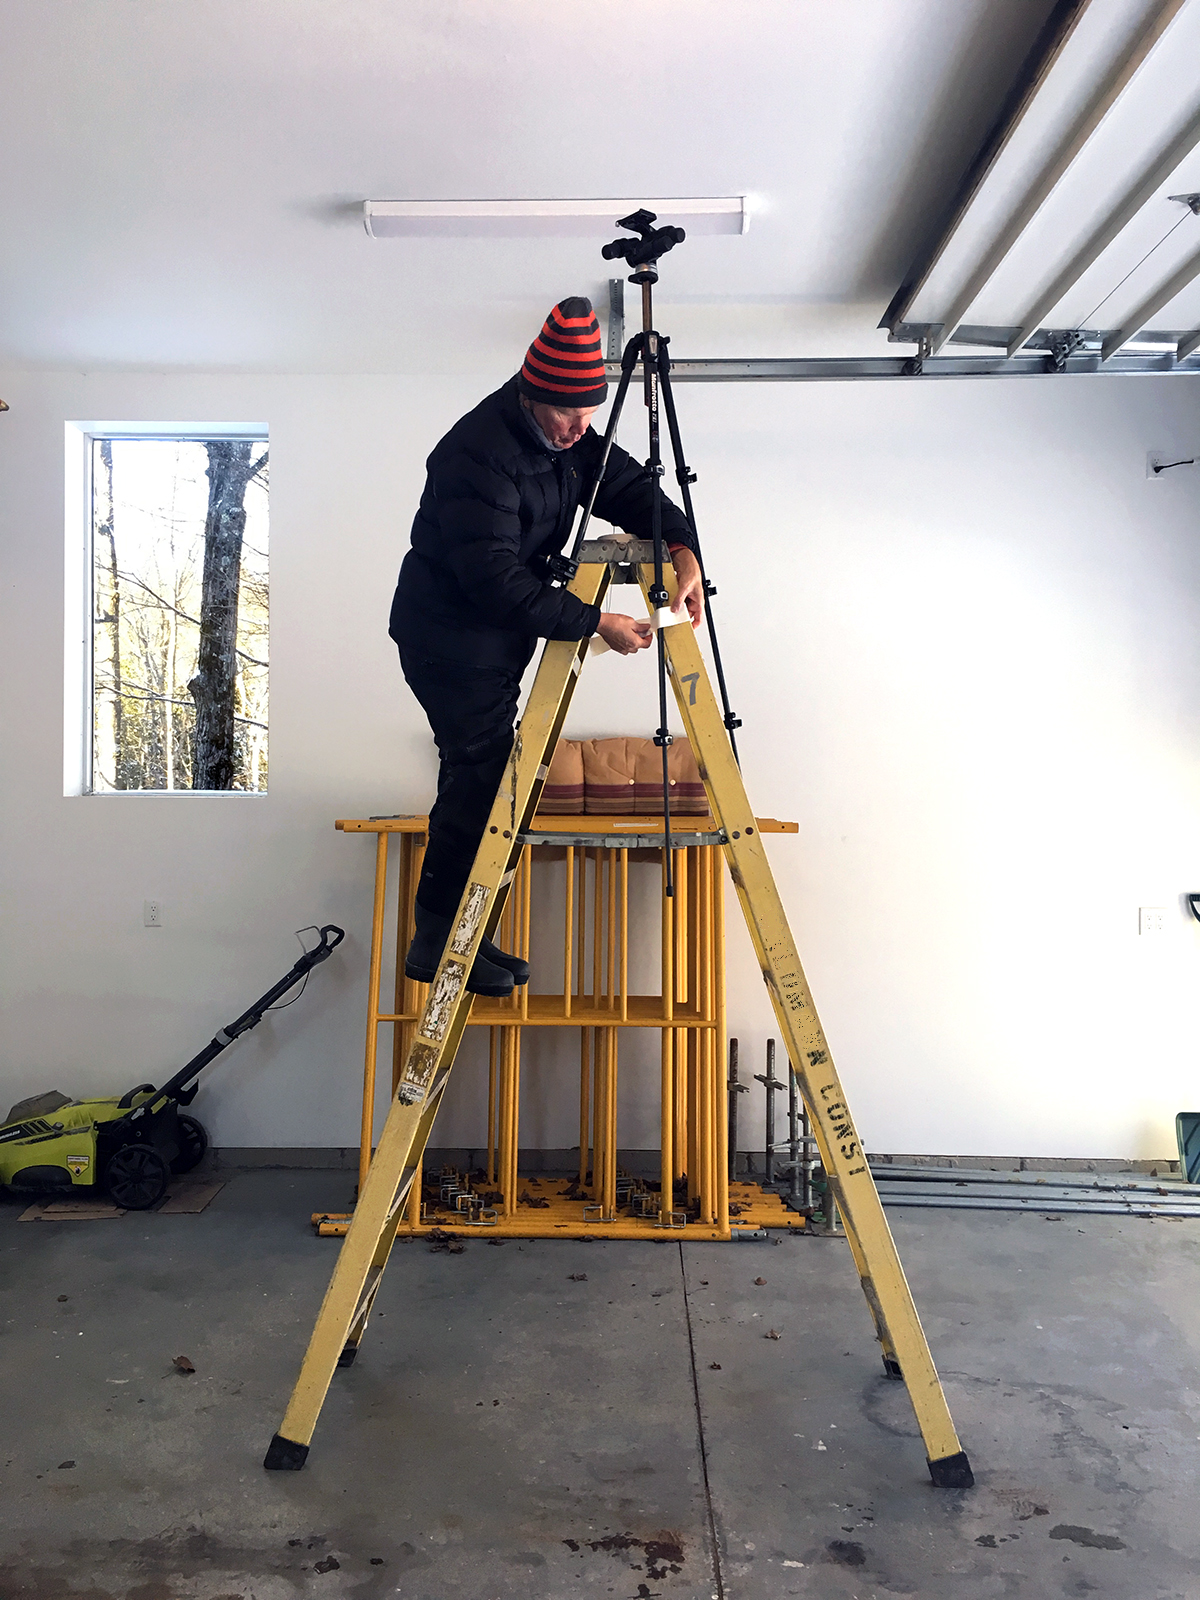 Poul Ober rigging up a ladder